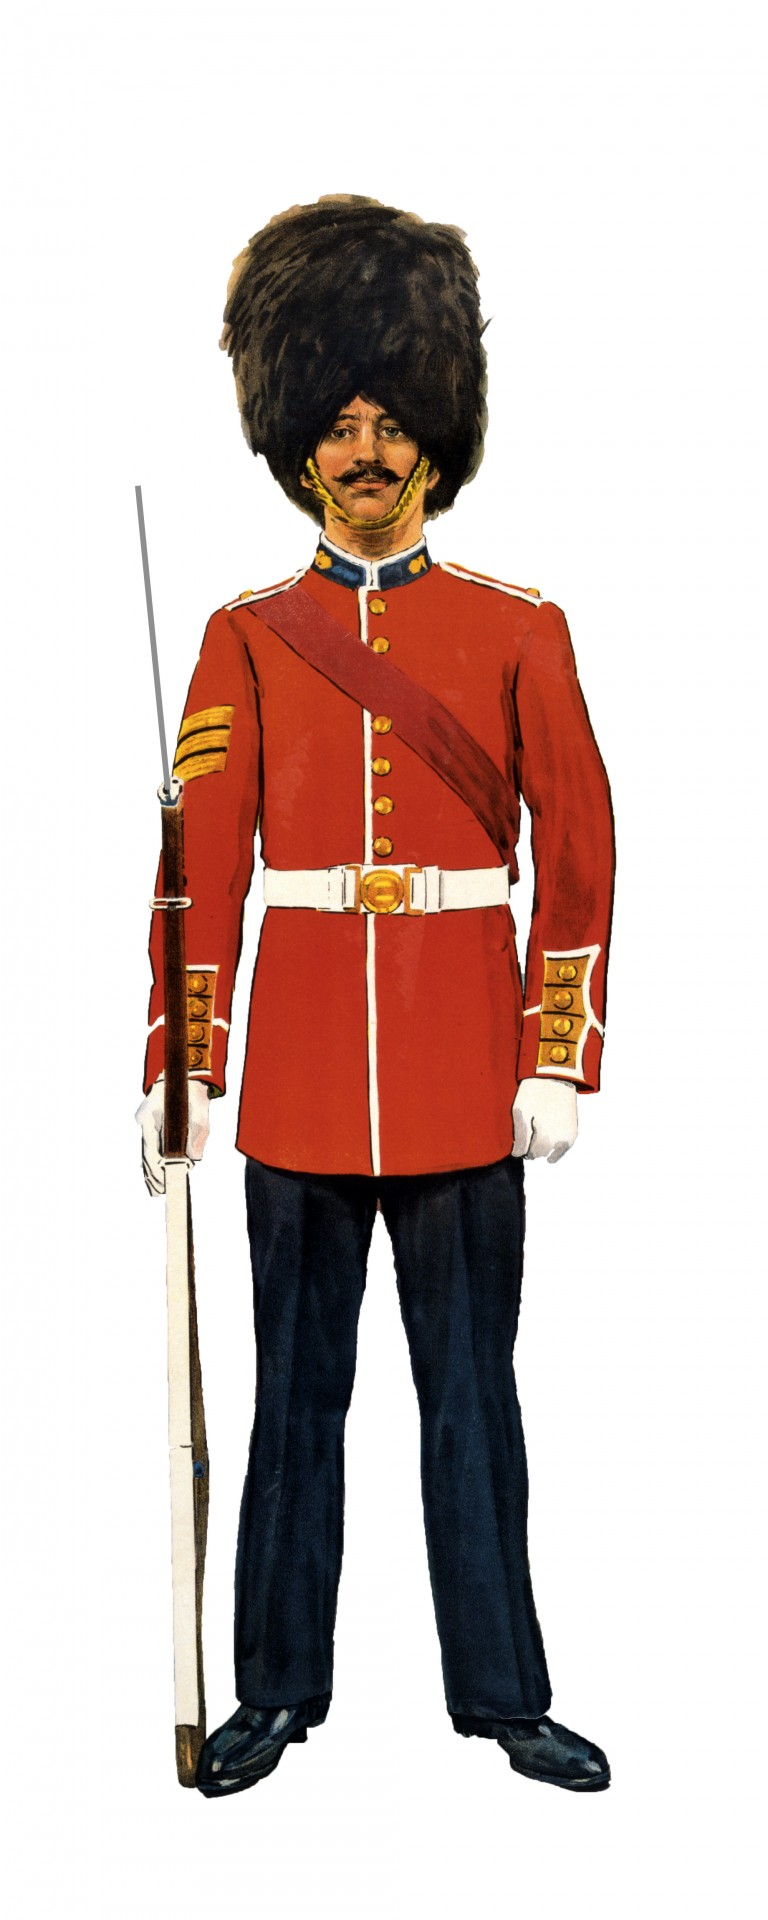 Soldier clipart soldier canadian. Grenadier guard free stock